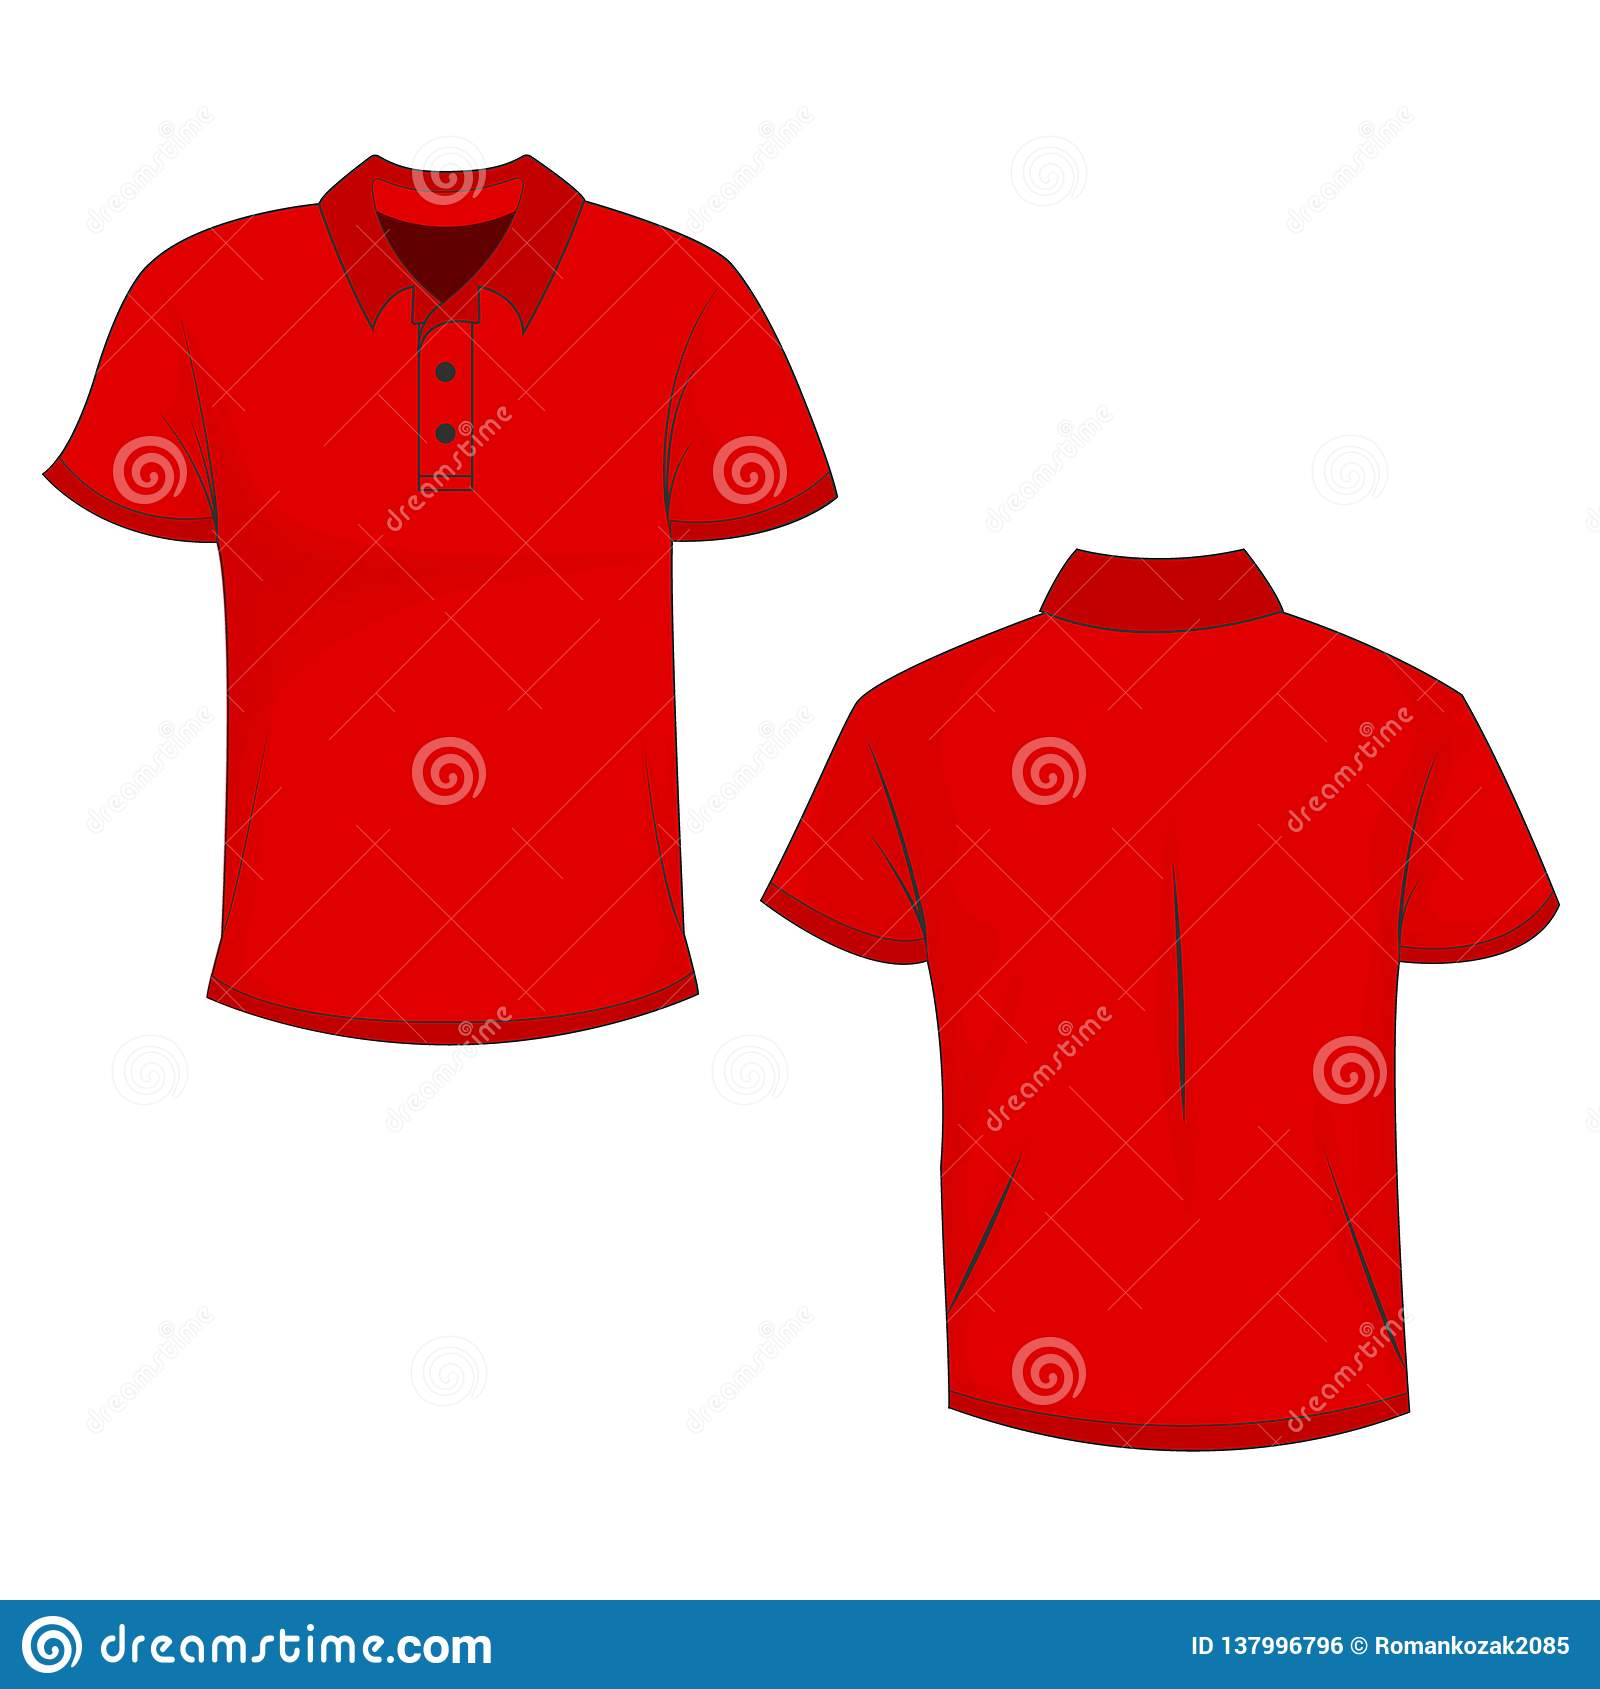 0e39cf62 Red Polo T-shirt Mock Up/template, Front And Back View, Isolated On ...